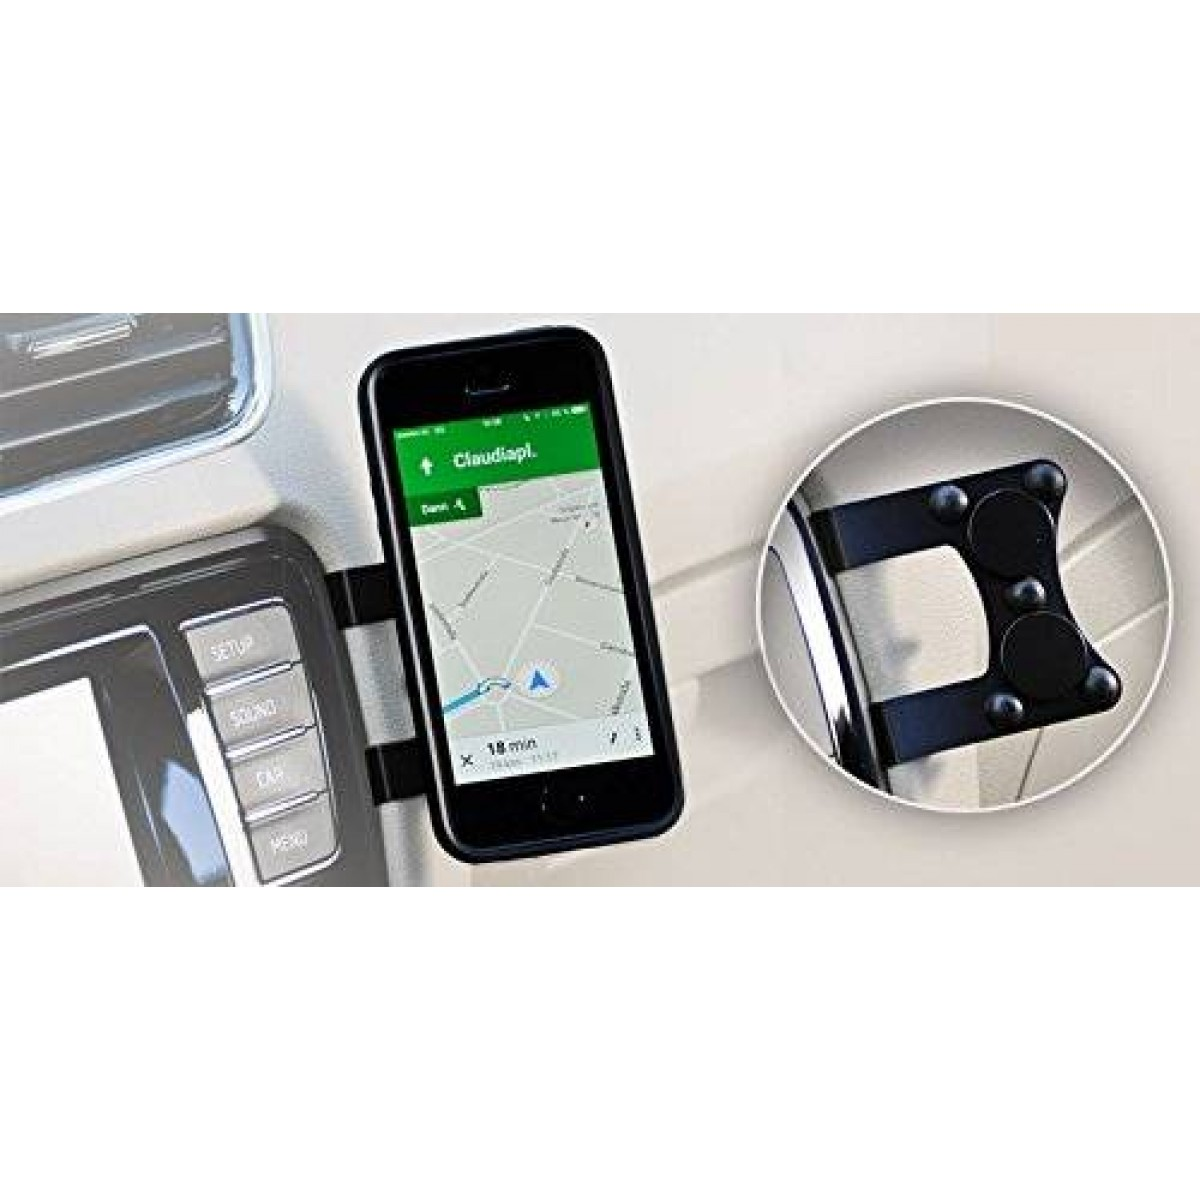 b71bebe4e29be6 Mag'n'Mount Magnetic Cell Phone Holder-no drilling, no gluing, no ...